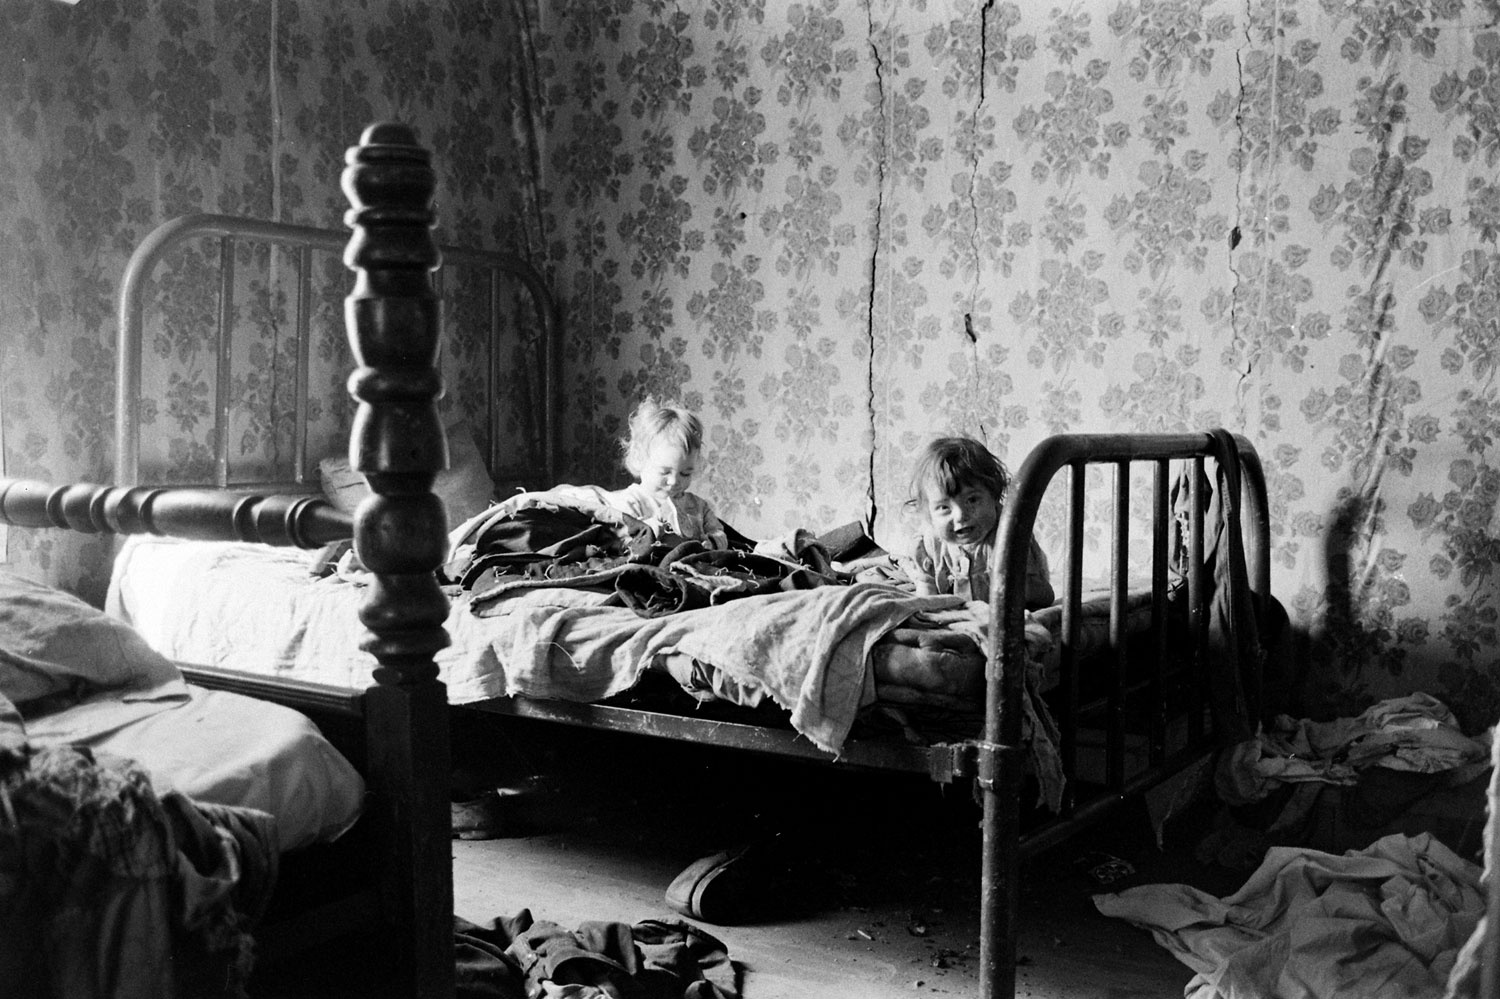 USA - Valley of Poverty: Eastern Kentucky's Everyday Life in the Early 1960s (Many Photos)